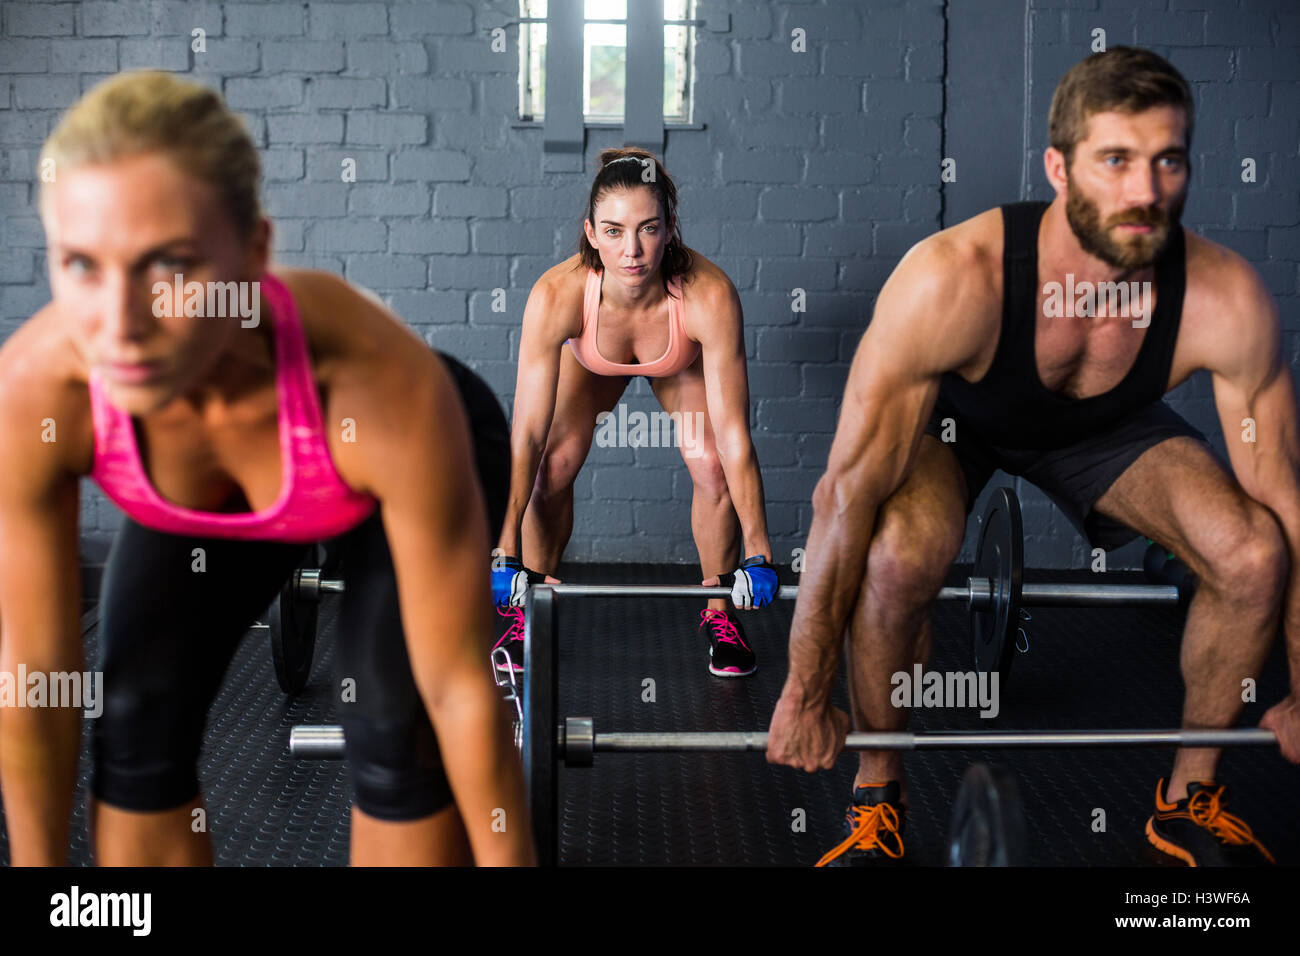 Athletes lifting barbell - Stock Image